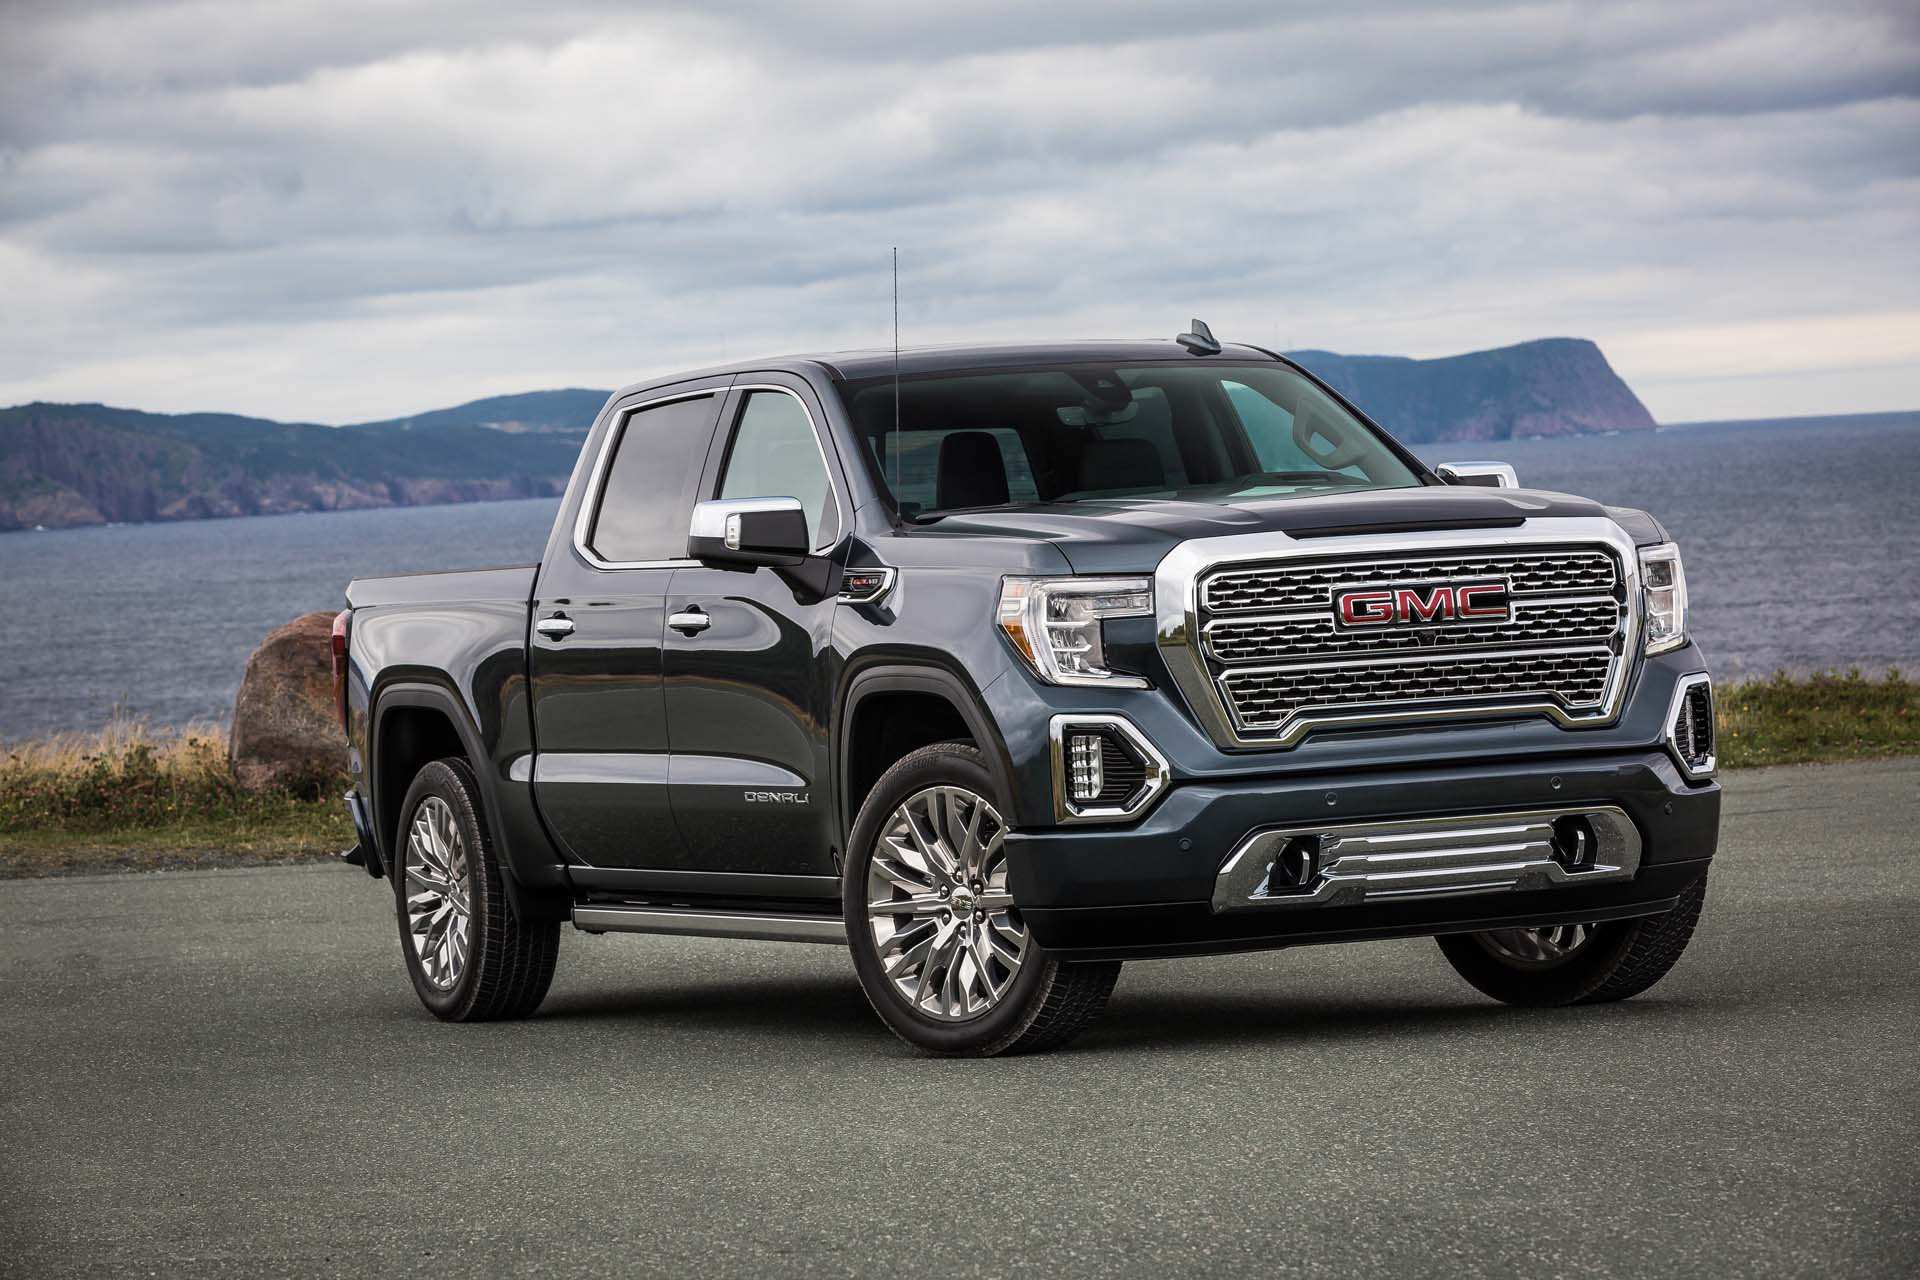 49 The Best 2020 Gmc Sierra Mpg Prices